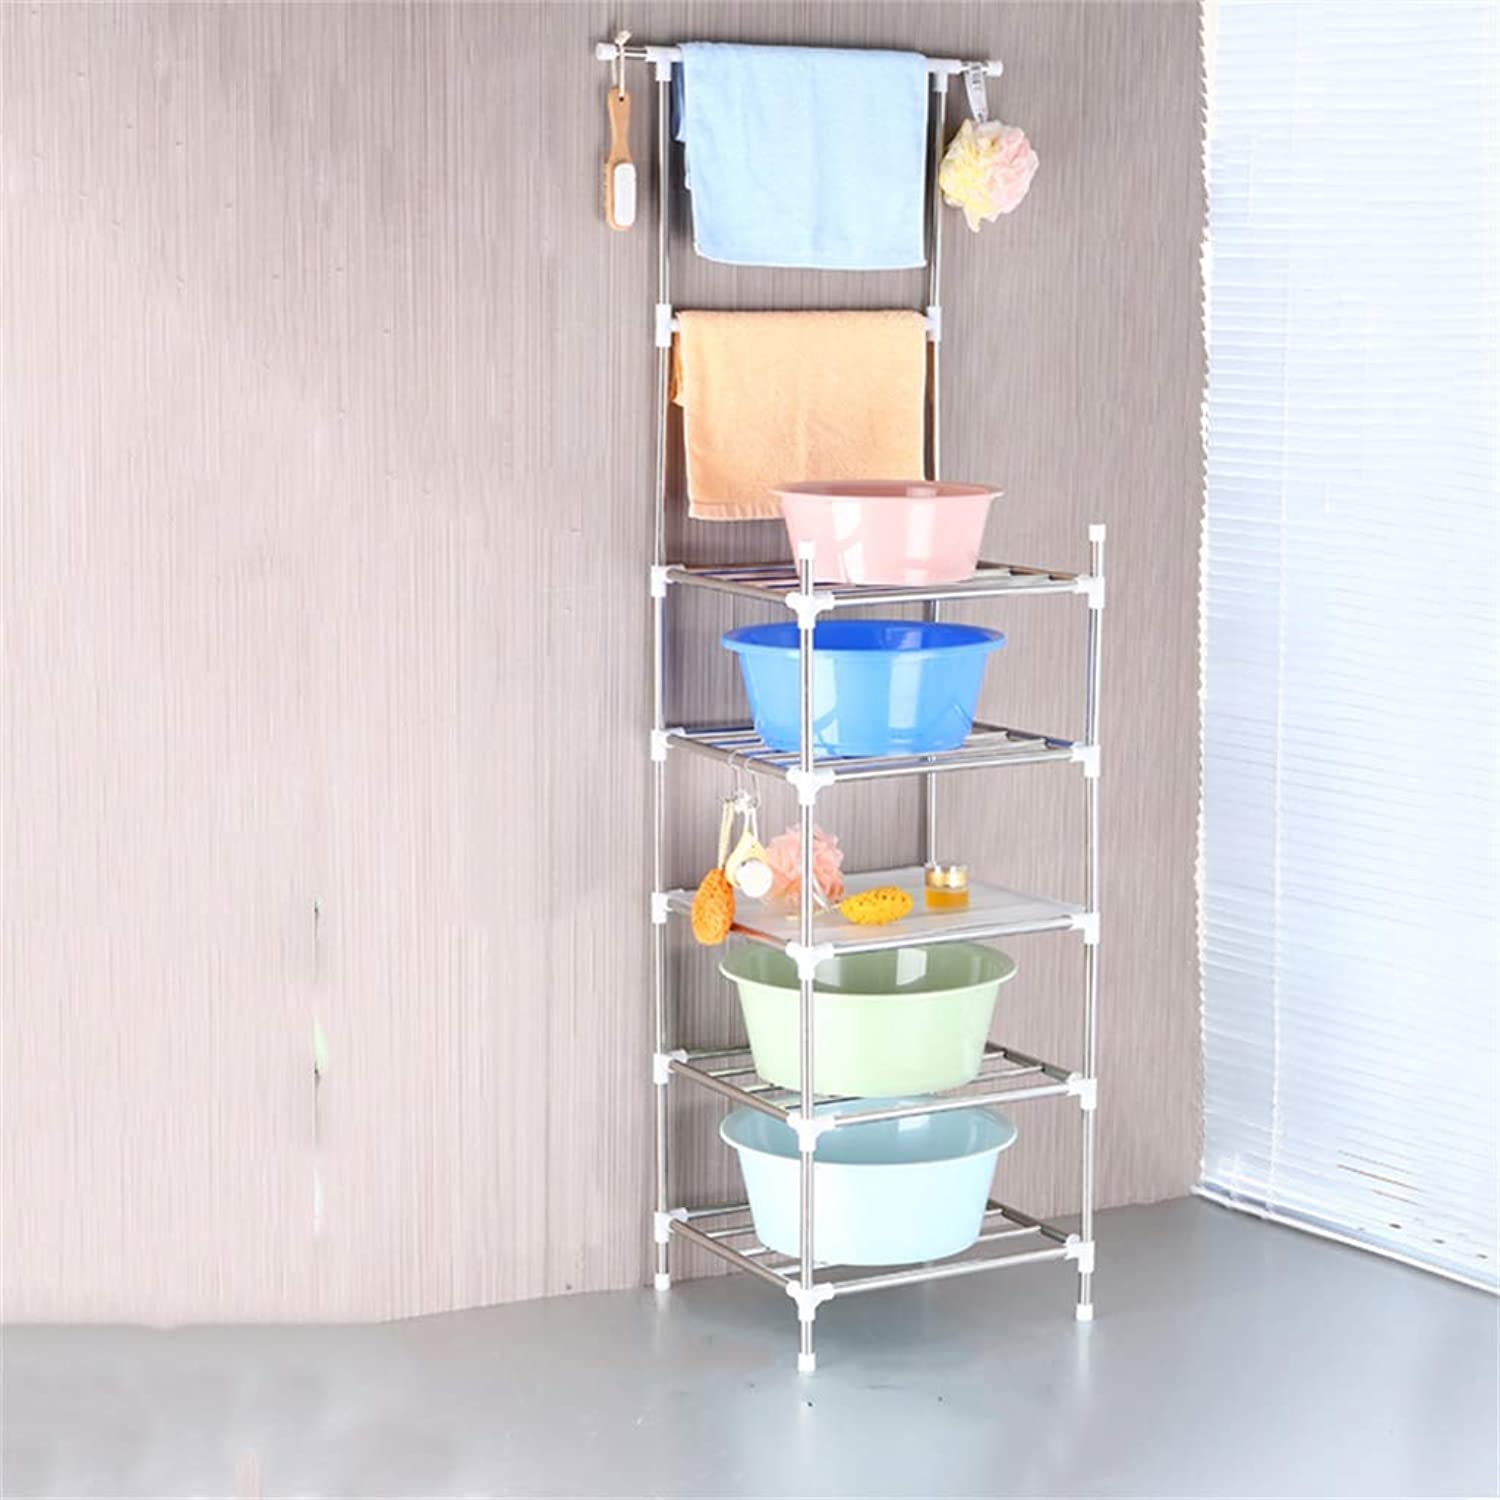 Cqq Shelf Stainless Steel Washbasin Stand Multi-Layer Toilet Floor Type Four Corners Kitchen Bathroom Shelf Storage Rack Bathroom Shelf (Size   43  172cm)